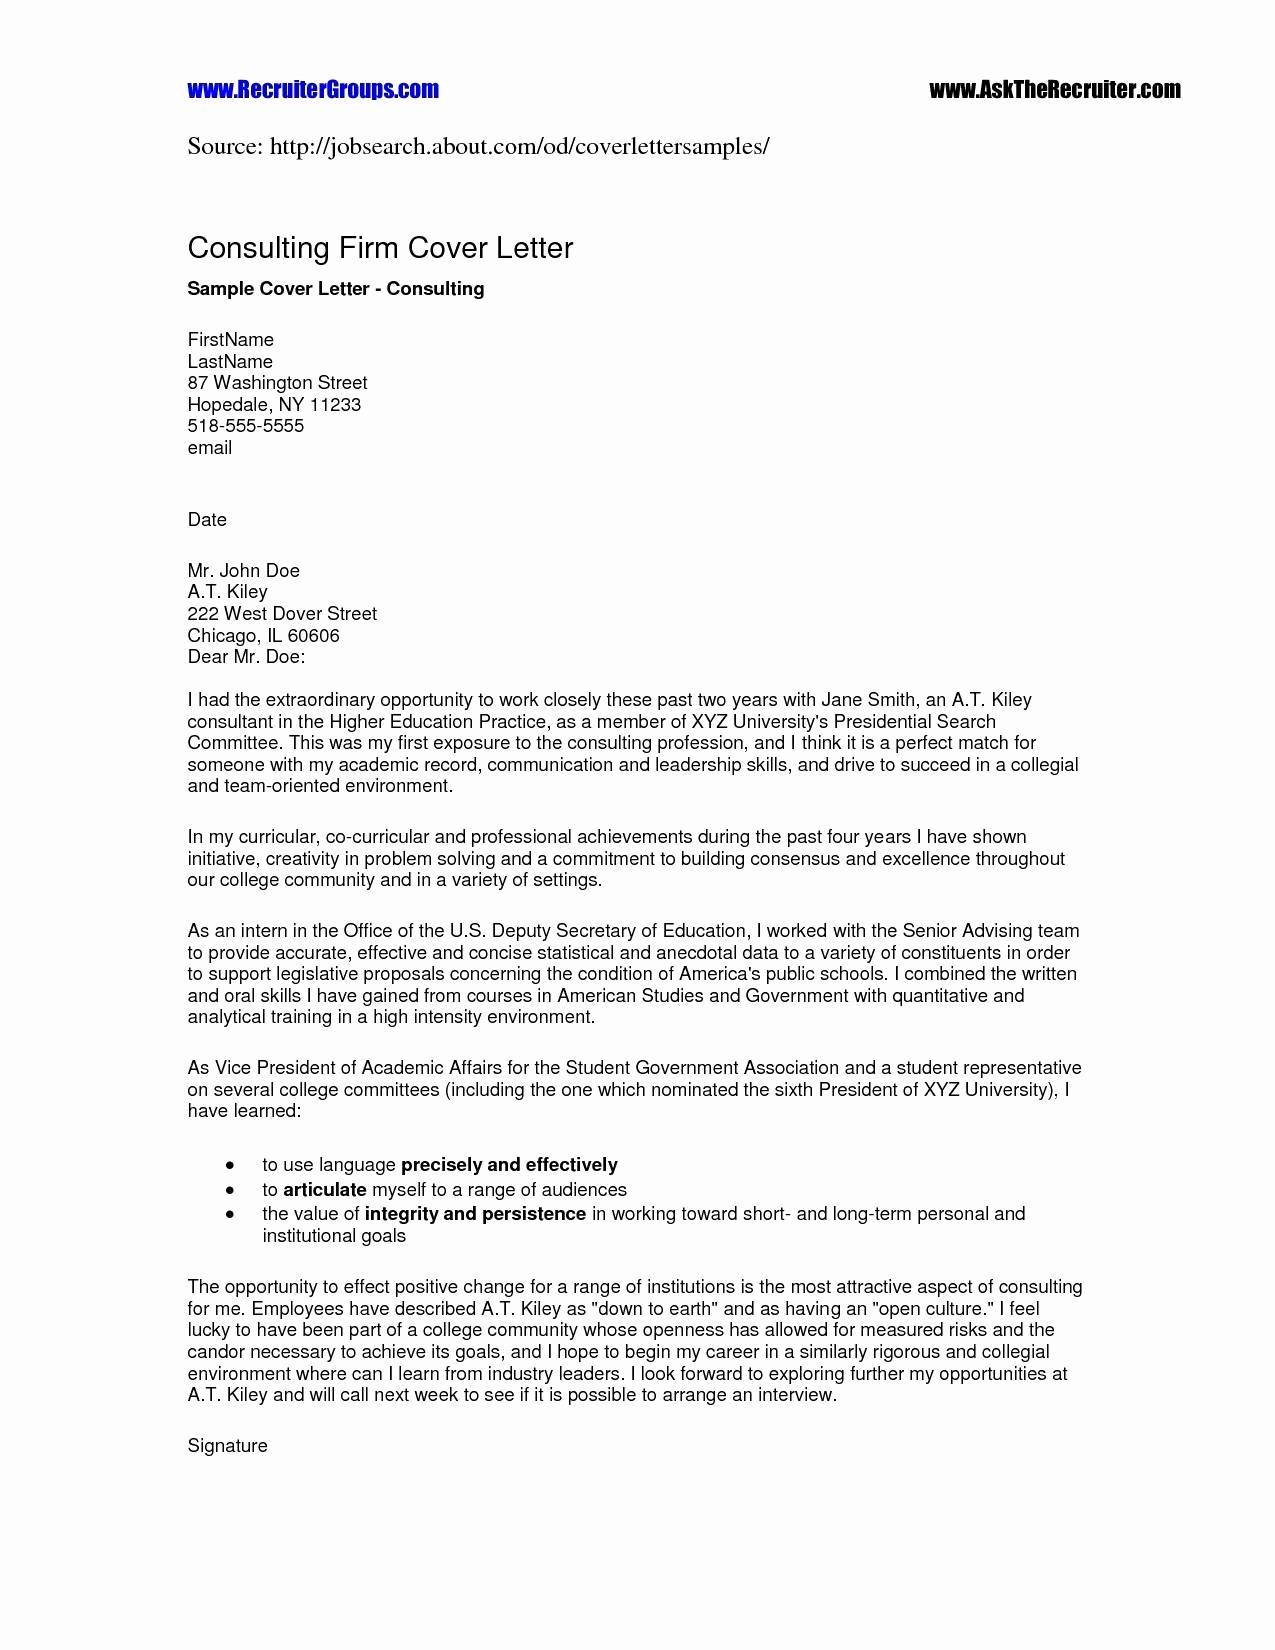 Creditor Cease and Desist Letter Template - Cease and Desist Letter Template for Debt Collectors Fresh 20 Debt